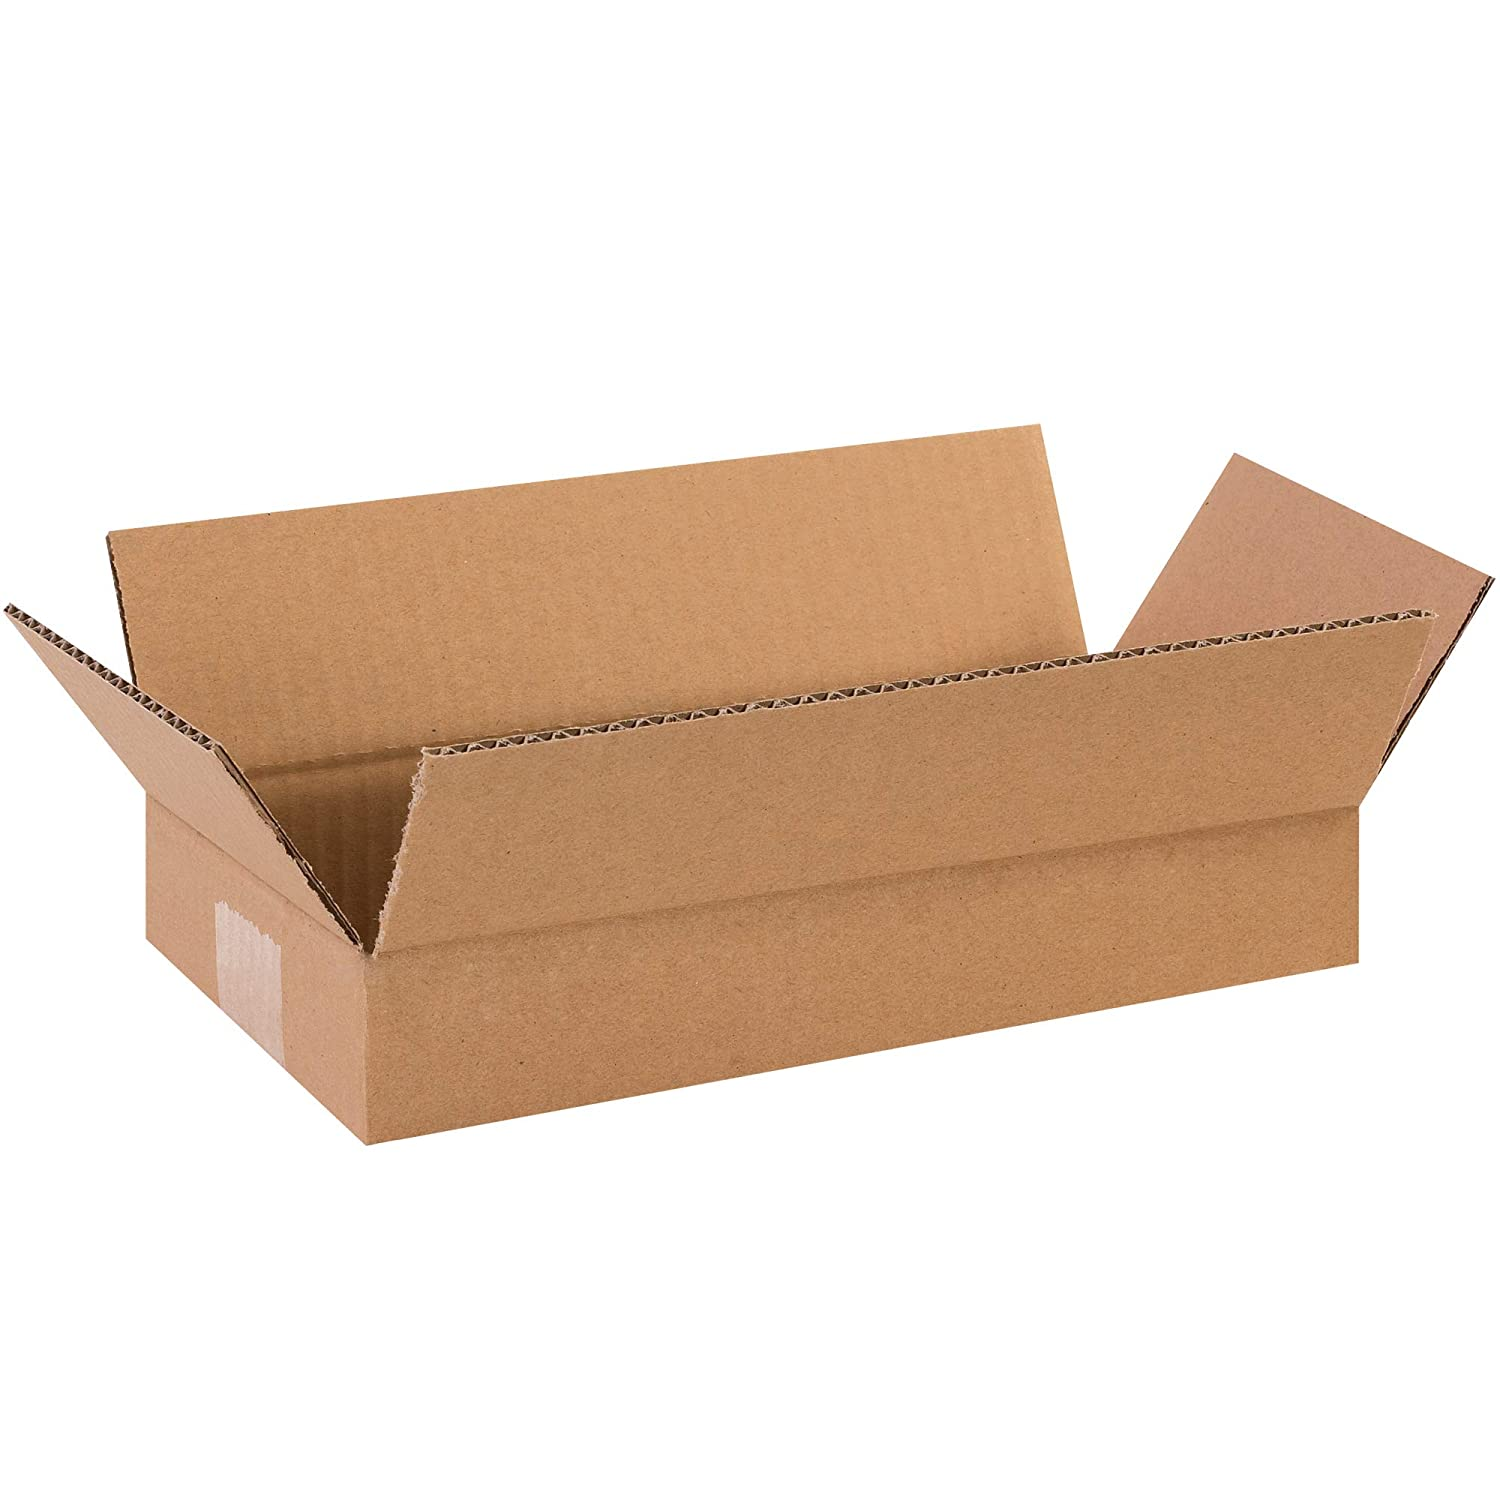 Aviditi Recycled Corrugated Cardboard Boxes NEW before selling ☆ 14